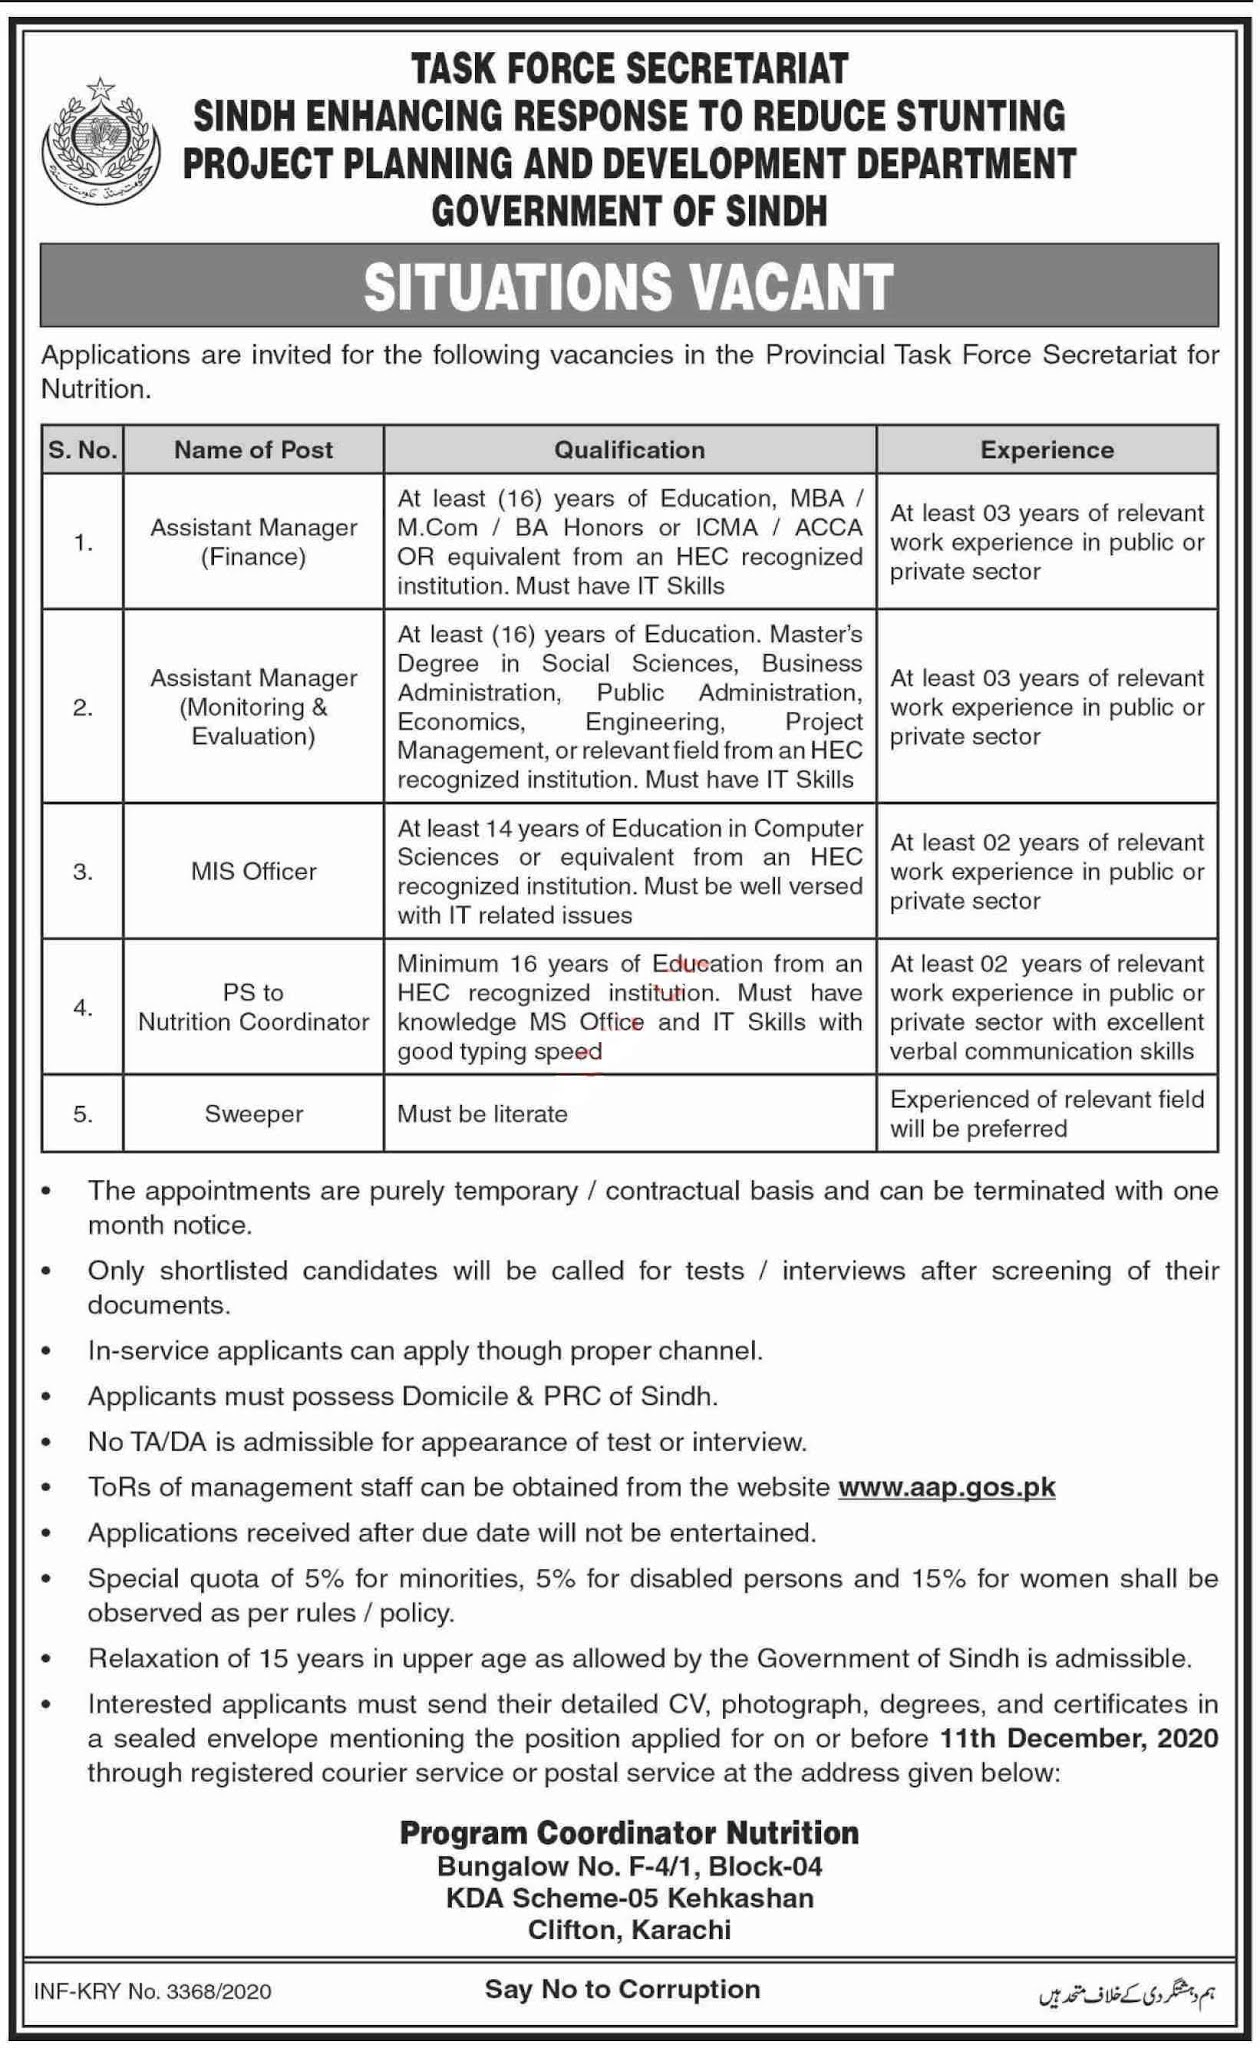 Task Force Secretariat Sindh SERRSP Project Jobs 2020 for Assistant Manager Monitoring, Assistant Manager Evaluation, MIS Officer and more